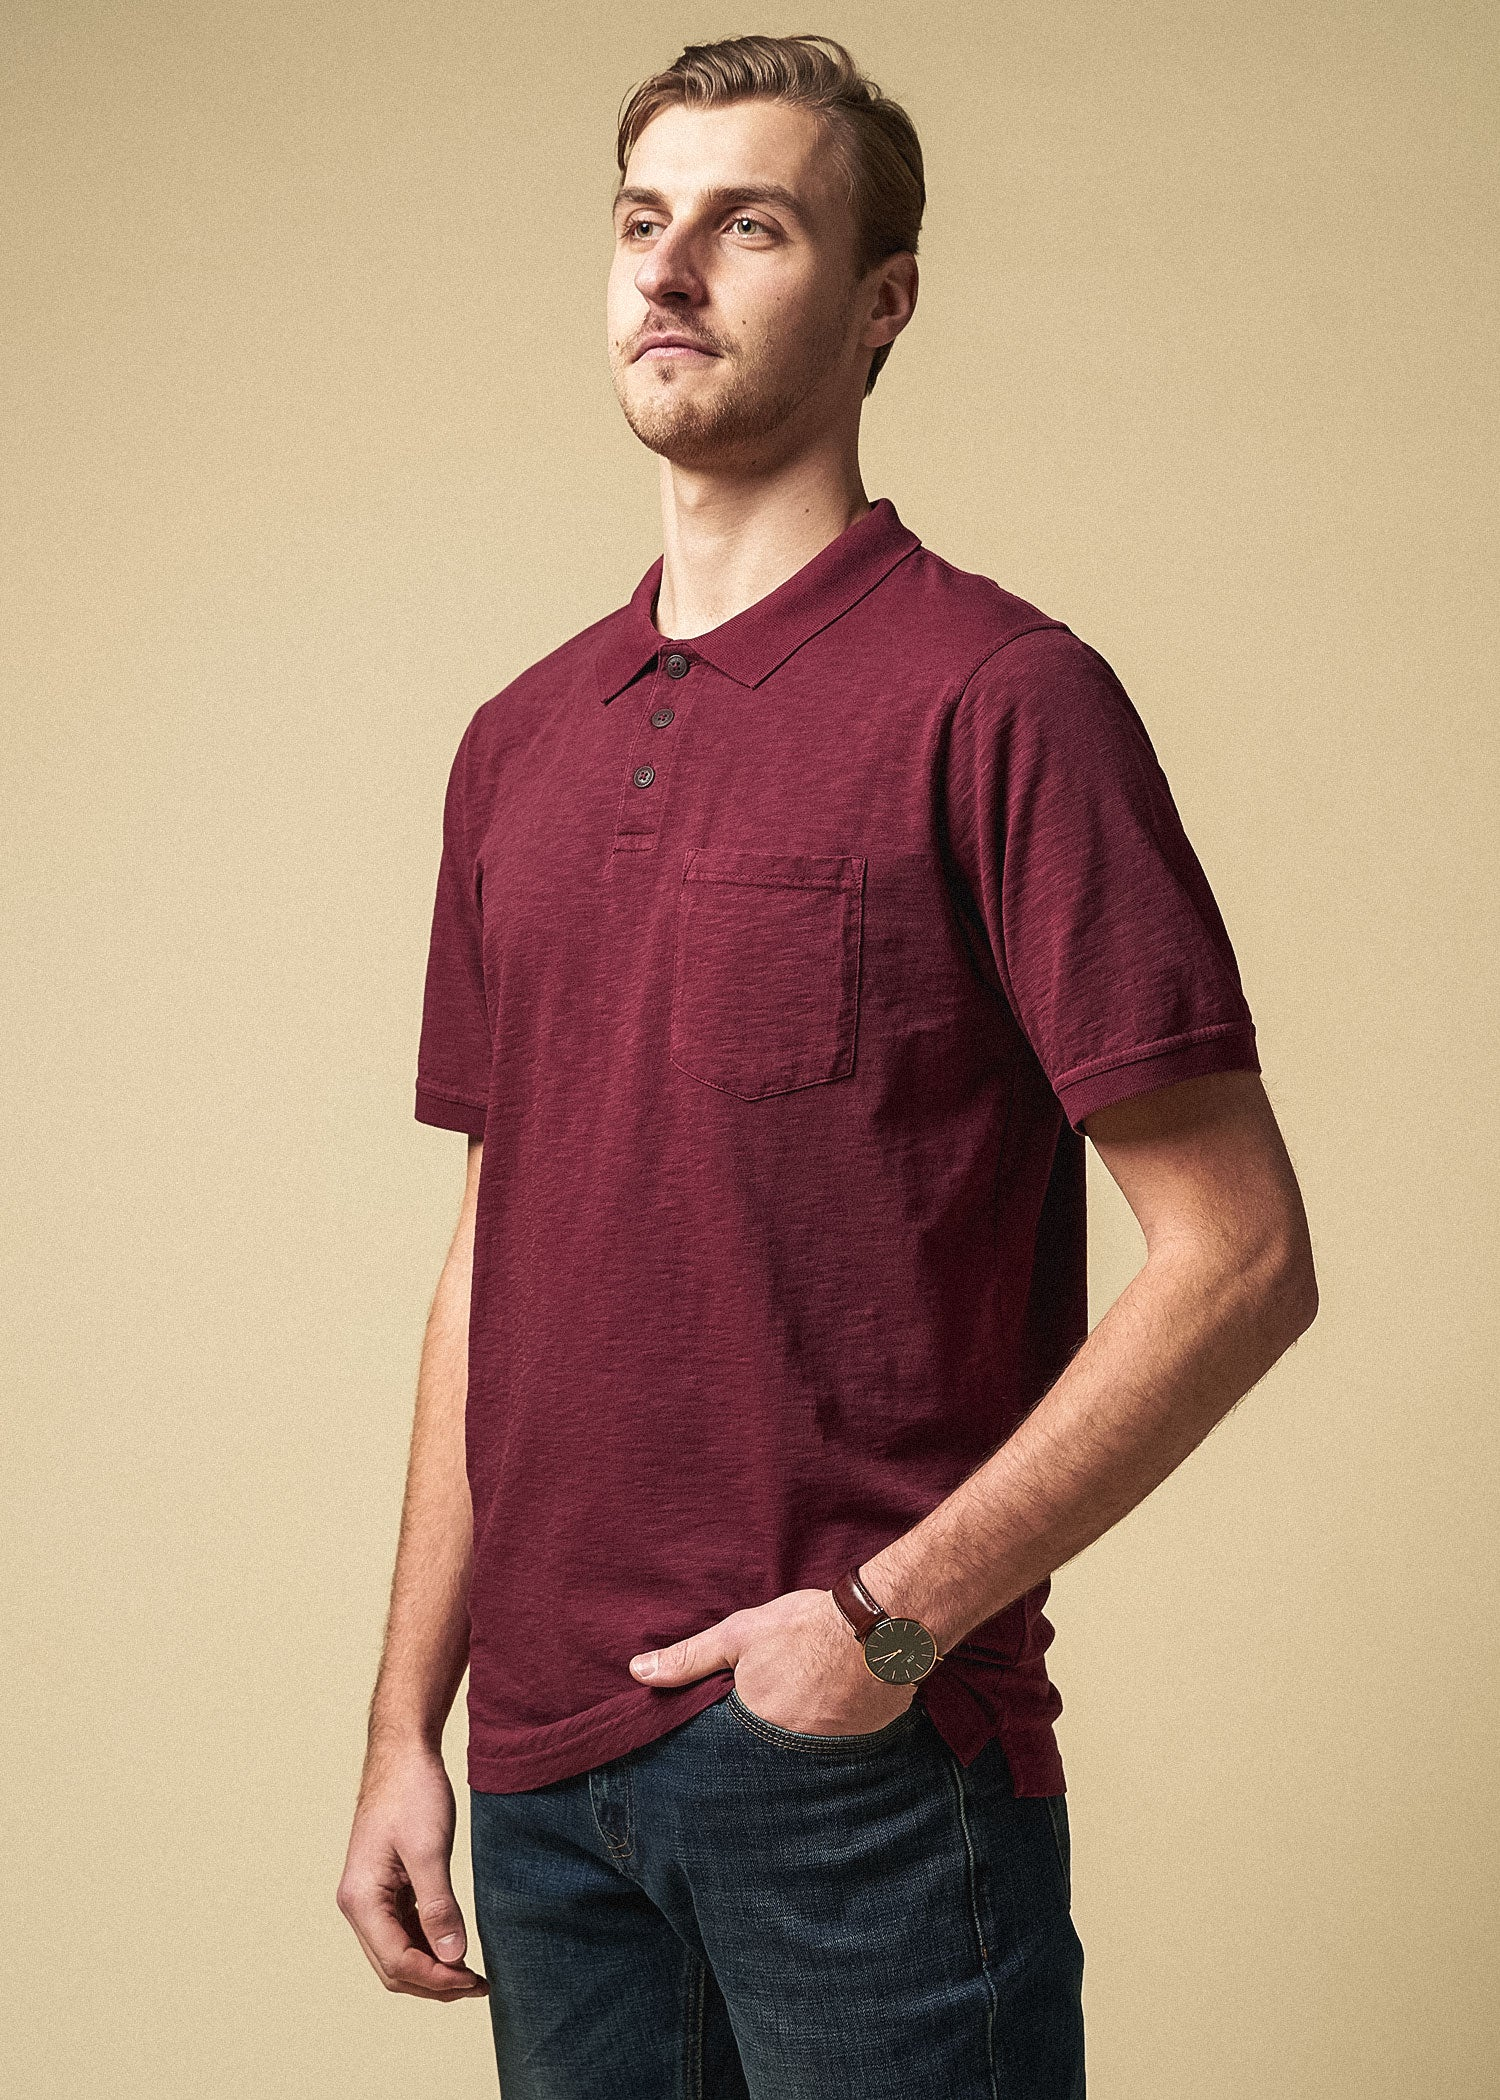 tall_mens_slub_pocket_polo_vintage_sumacred-side